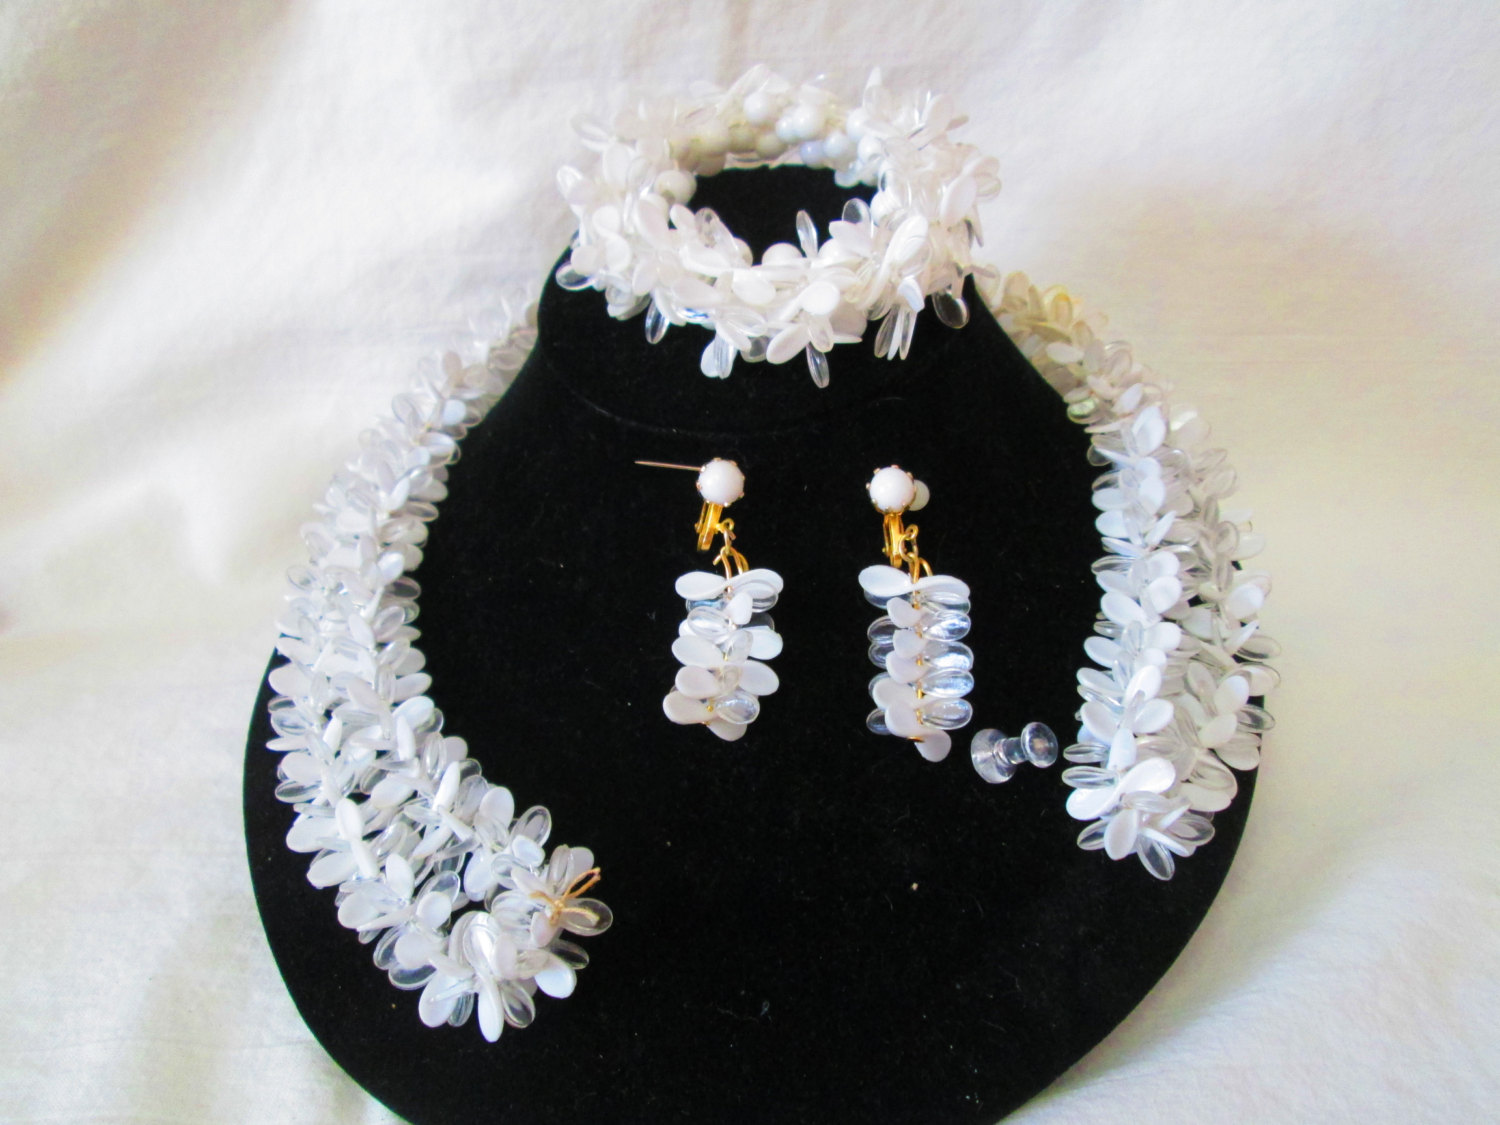 Fantastic 1950u0027s White and clear Jewelry Set Bracelet Necklace and clip earrings Wow Vintage Costume Jewelry & Fantastic 1950u0027s White and clear Jewelry Set Bracelet Necklace and ...